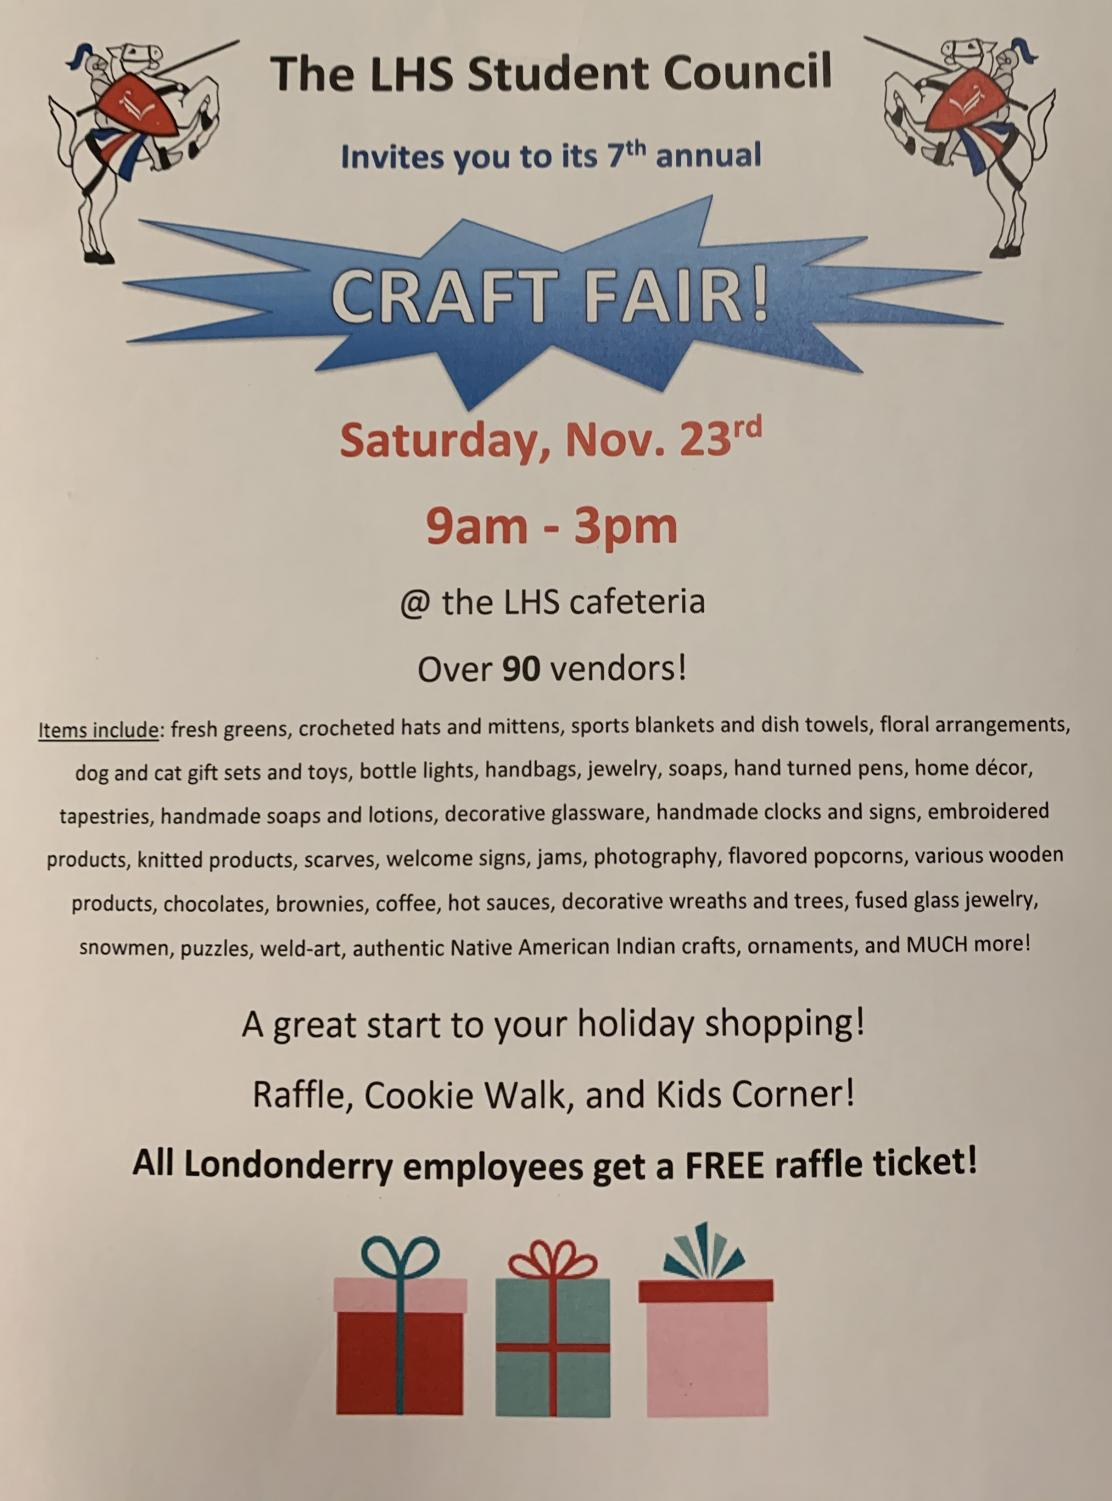 The LHS Student Council craft fair is a great place to start your holiday shopping!